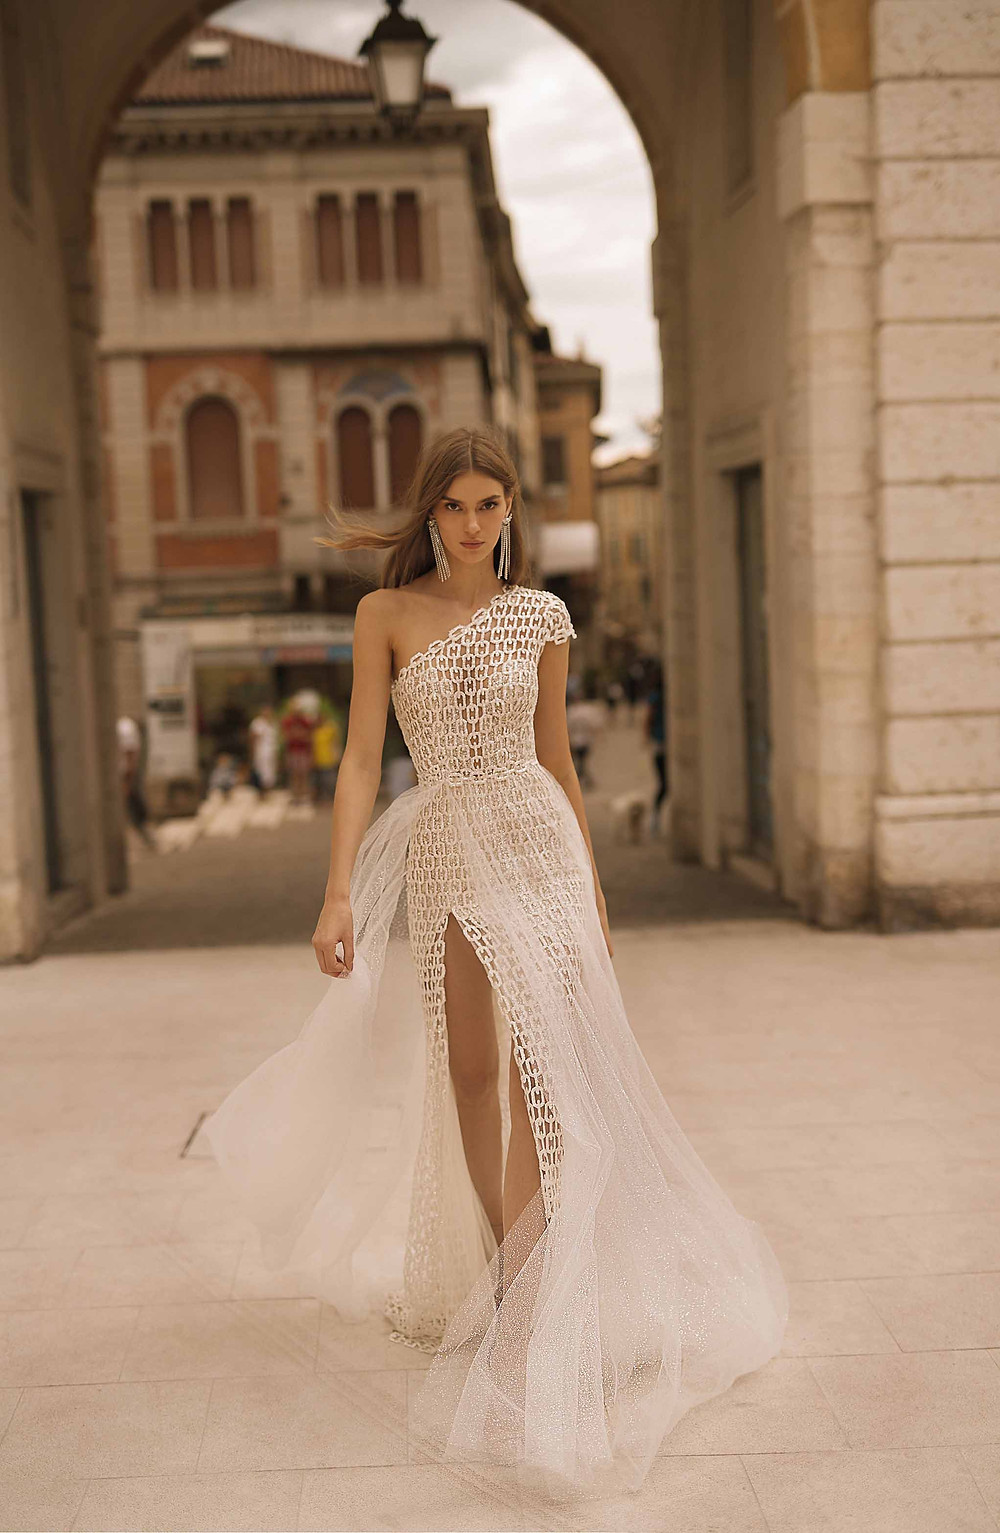 A Berta one sleeve A-line wedding dress, with chain print design and a tulle detachable skirt or overskirt